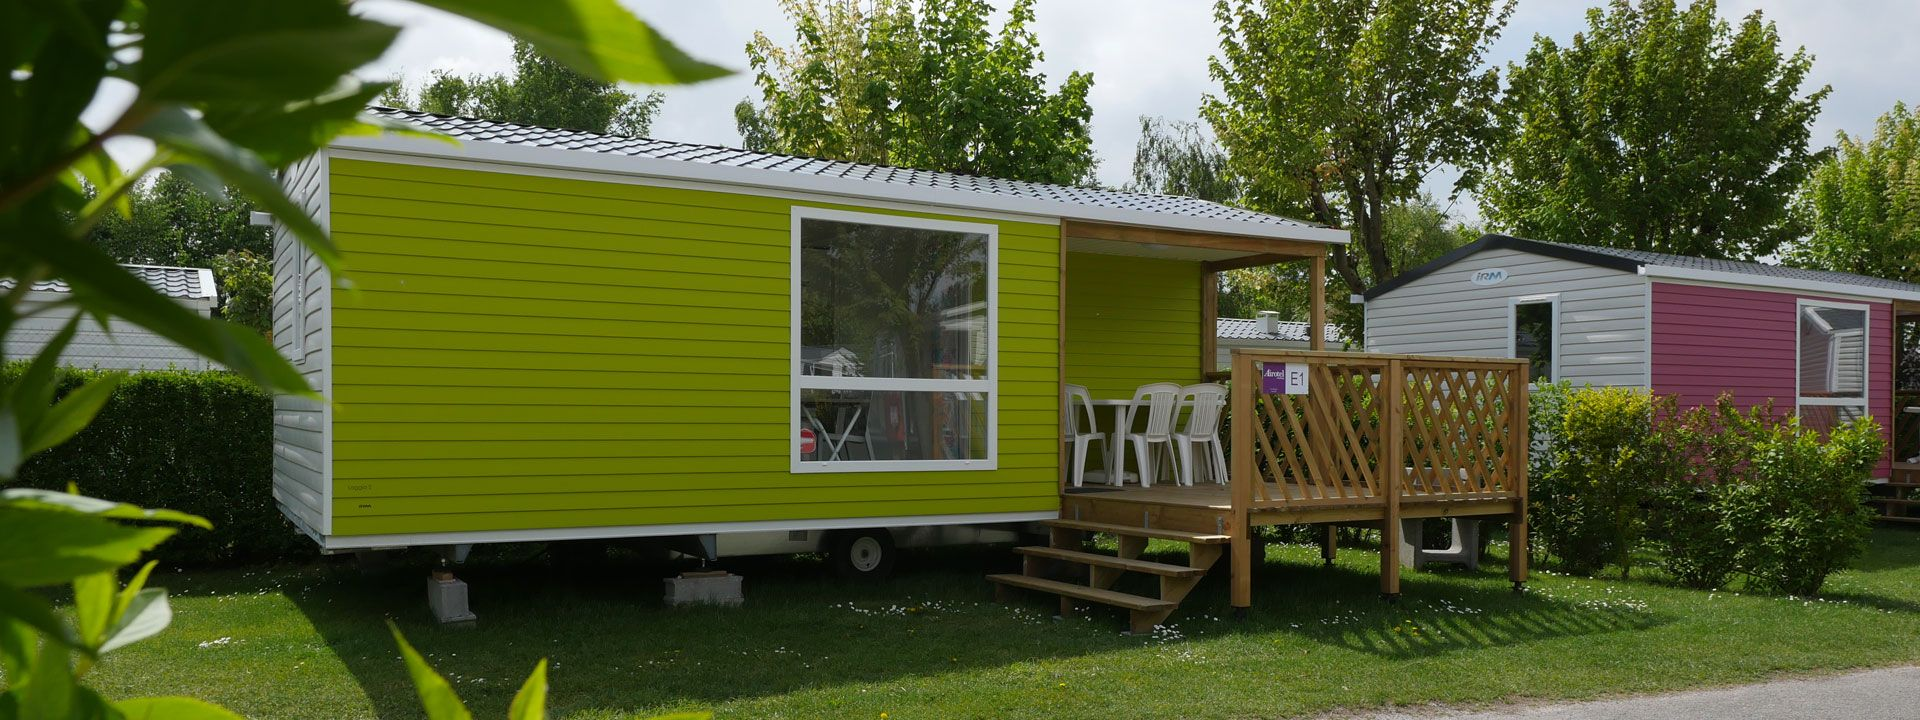 Location mobilhome baie de somme